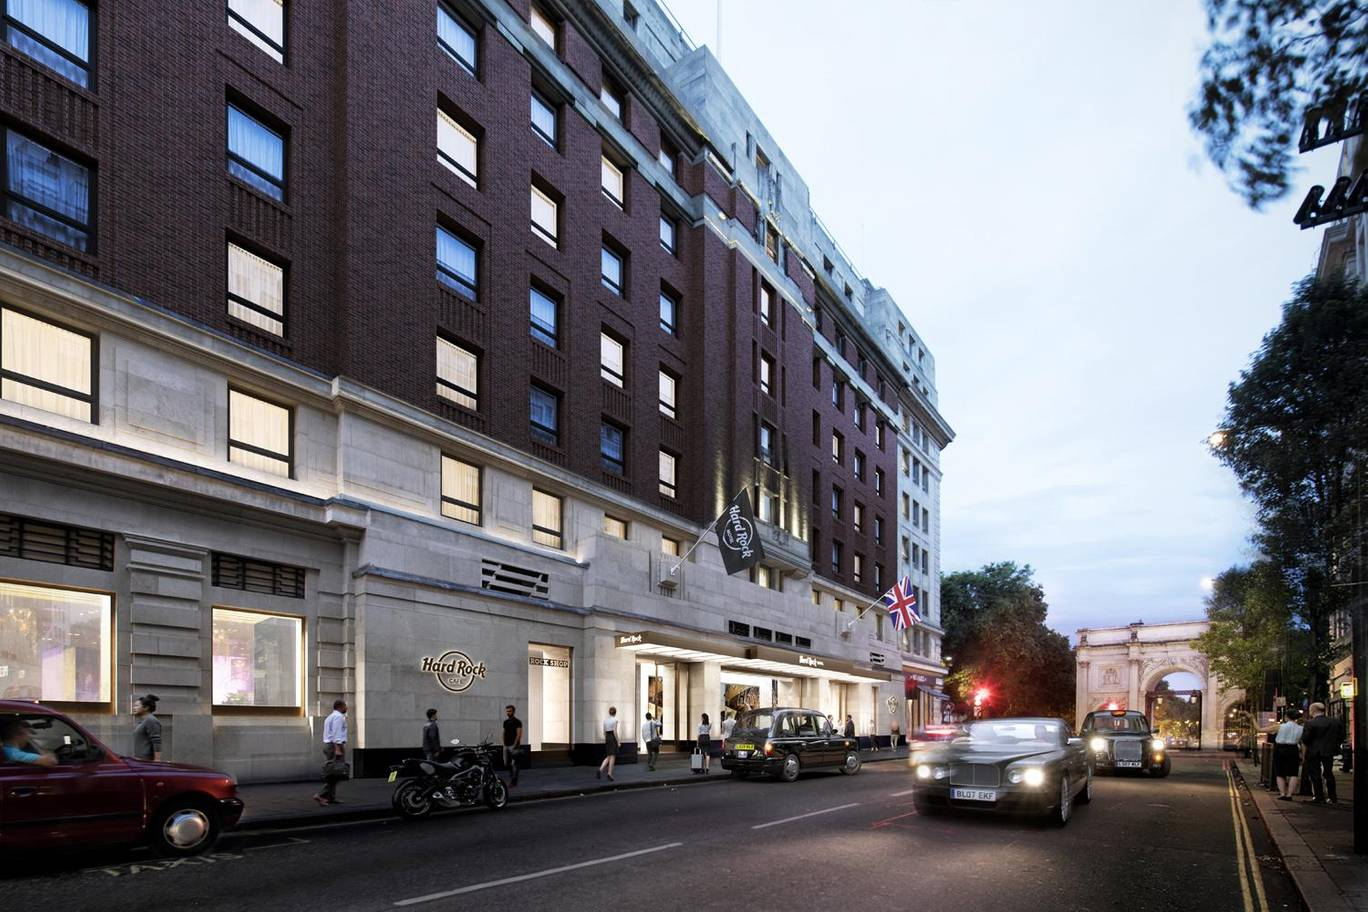 Hard Rock Hotel London steals the show!